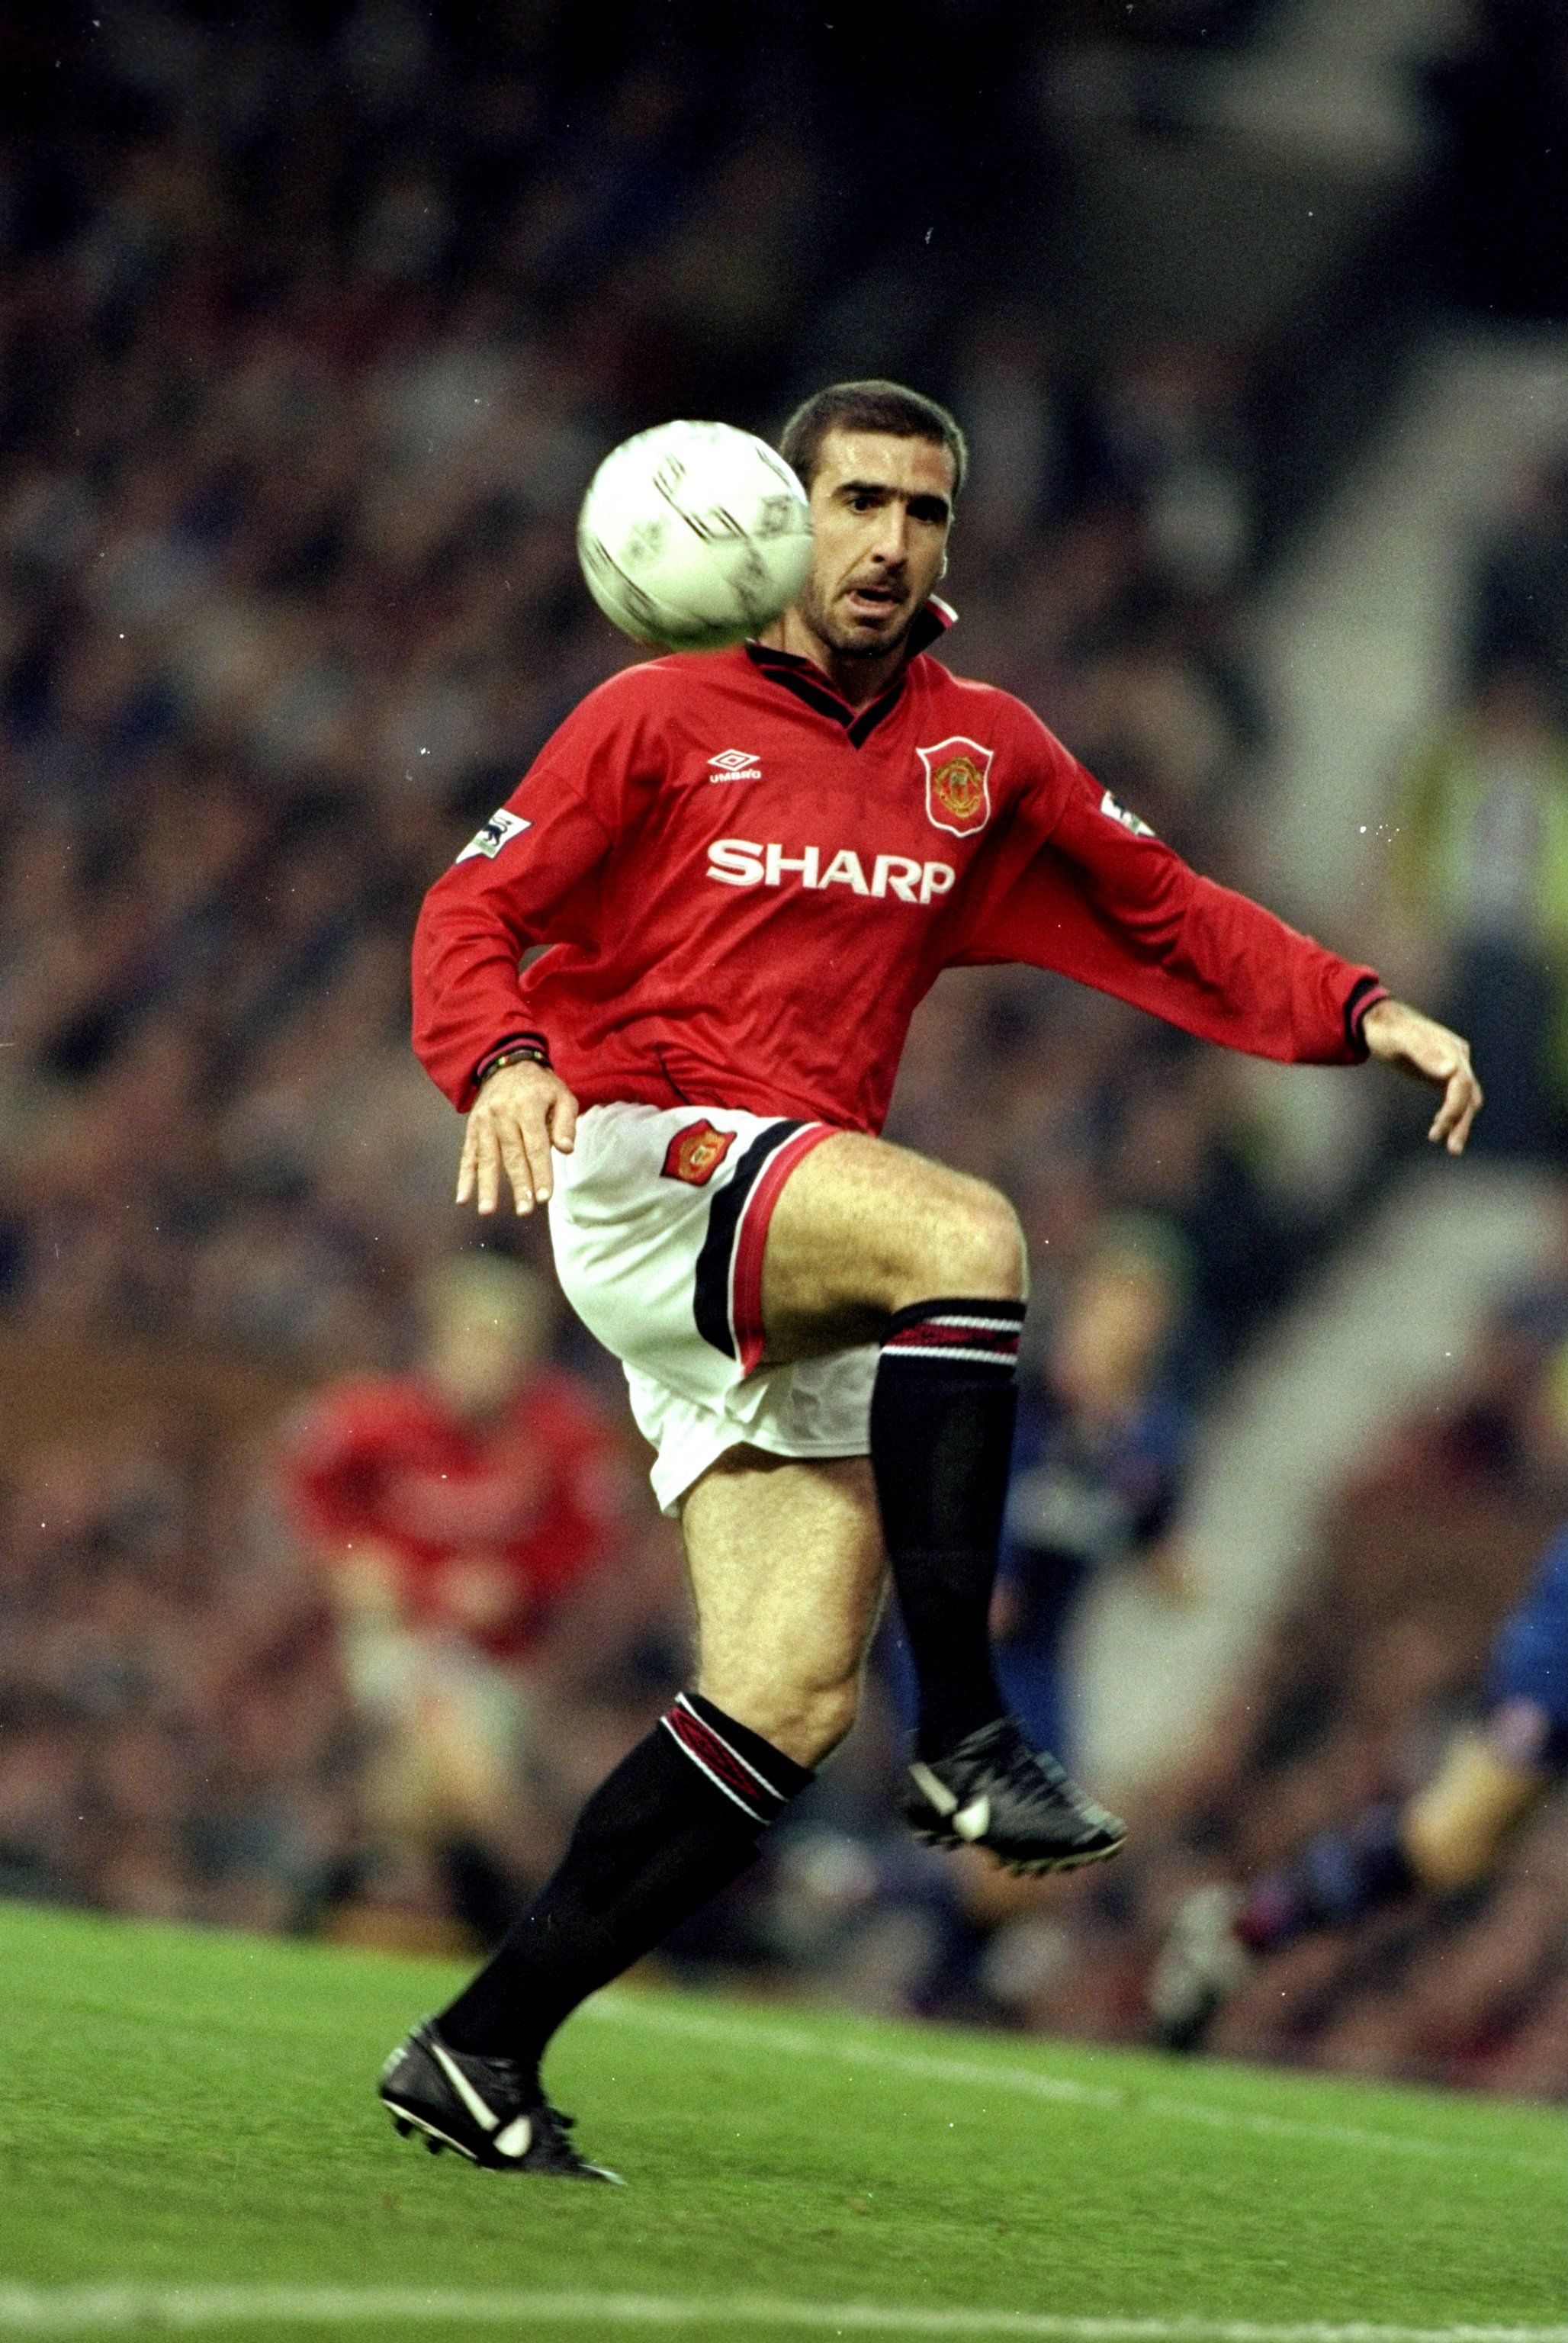 Eric cantona signs for manchester united in november, 1992 (image: Eric Cantona, Manchester United Player of the Year 1995/96 ...